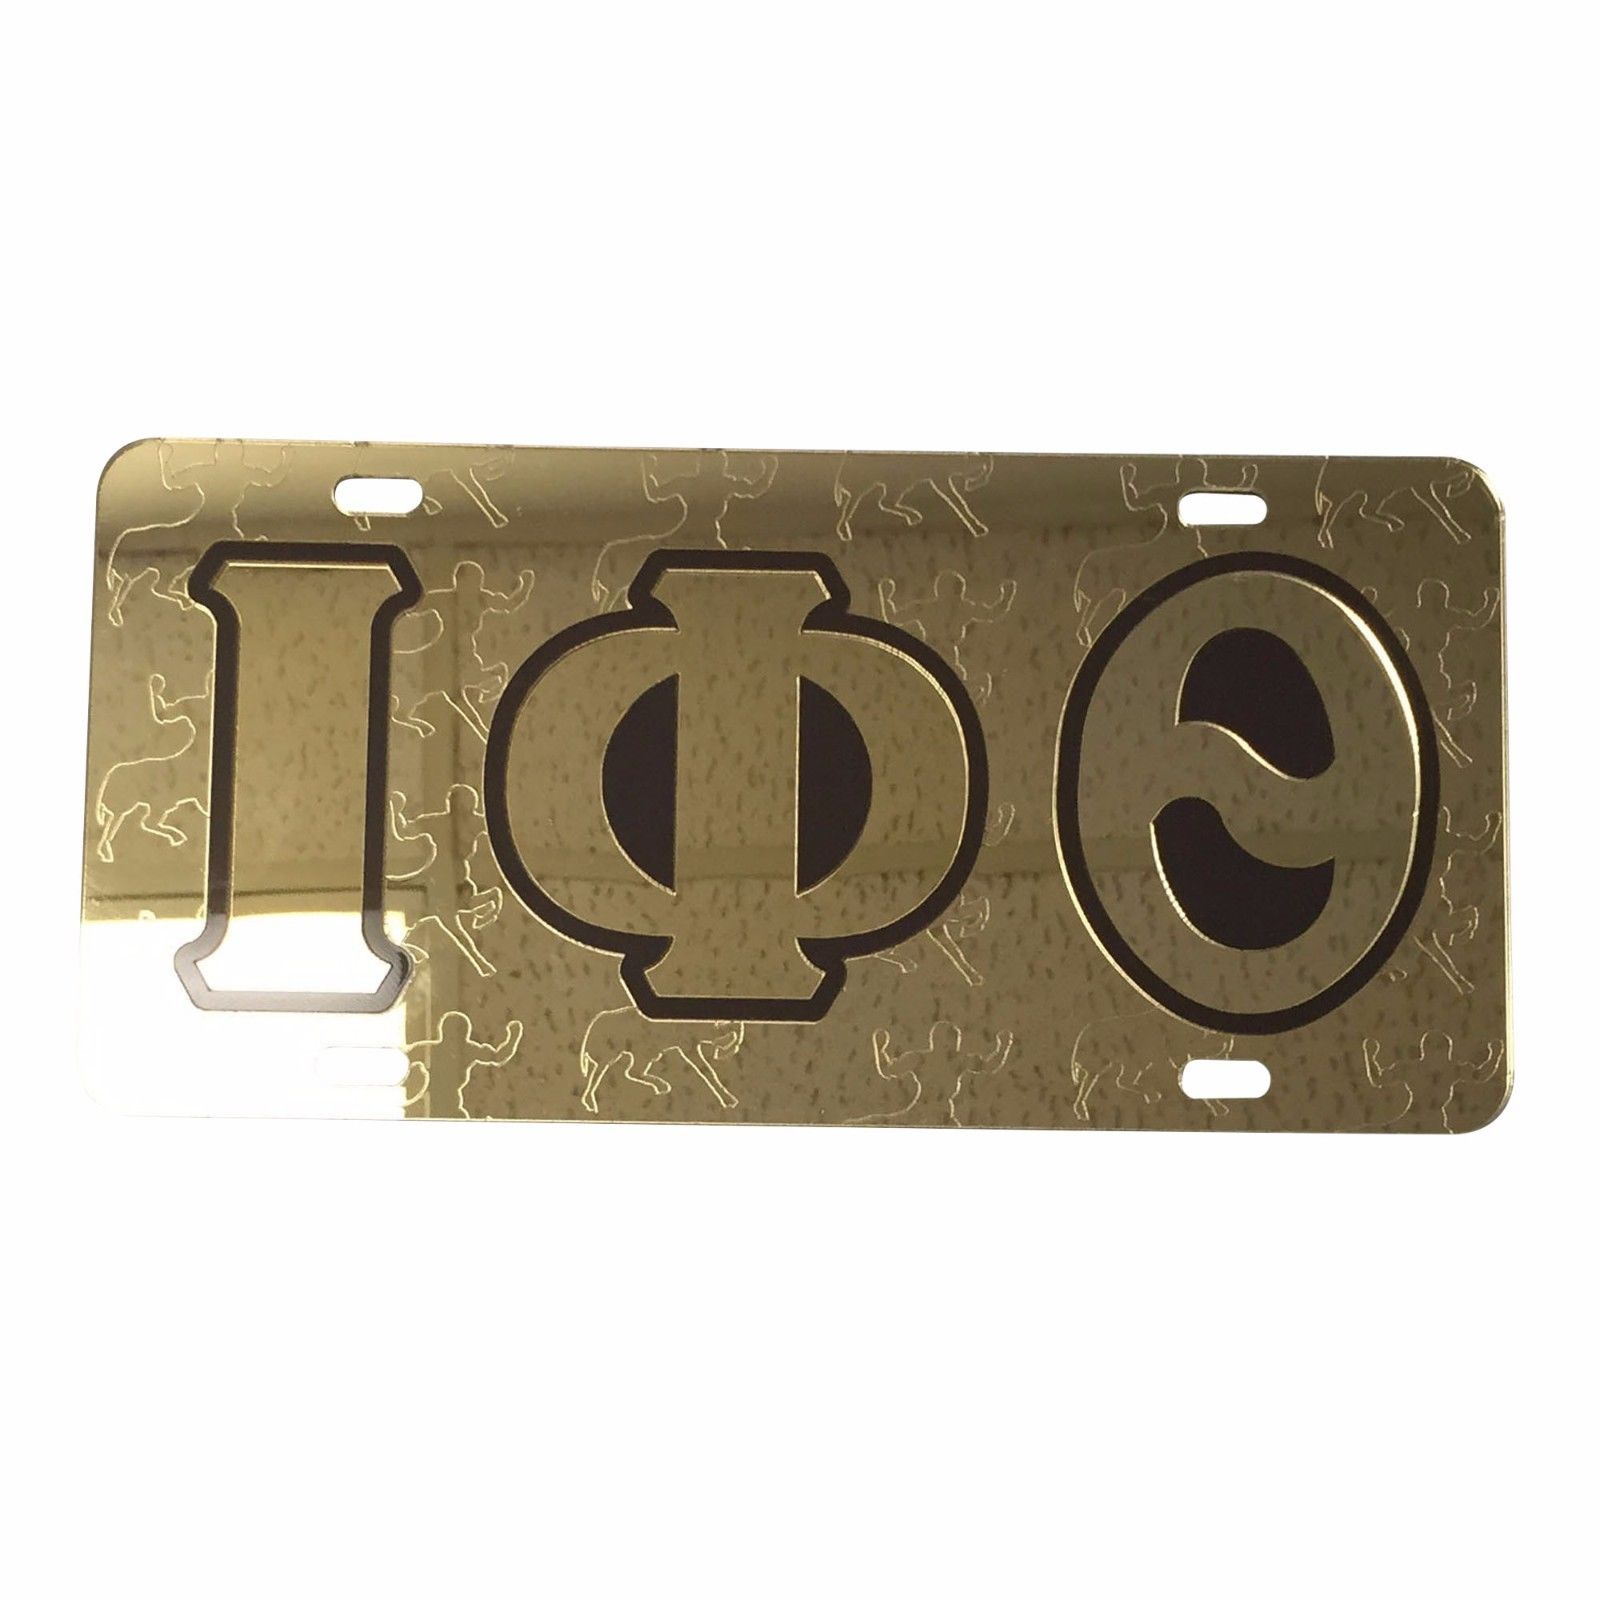 #6107 Iota Phi Theta License Plate Car Tag